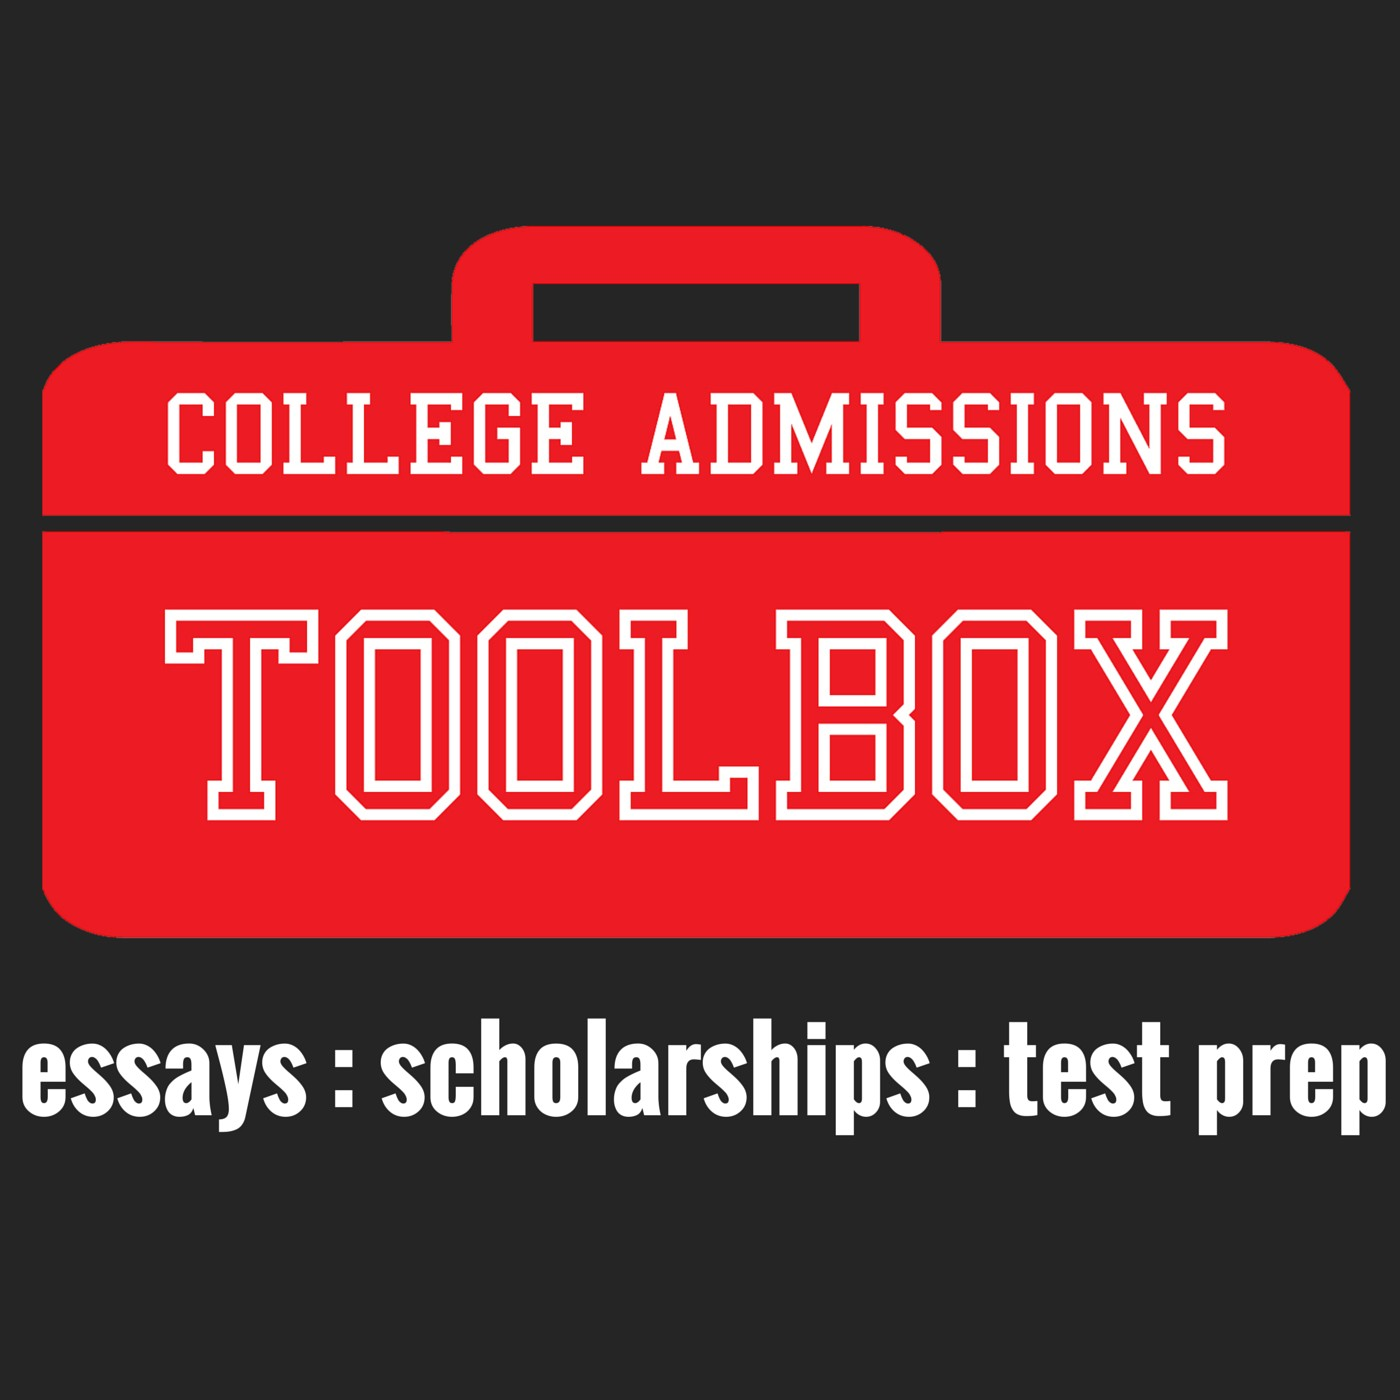 006 College Essay Advisors Example The Admissions Toolbox Podcast Applications Essays Review To Wondrous Princeton Duke Stanford 1400